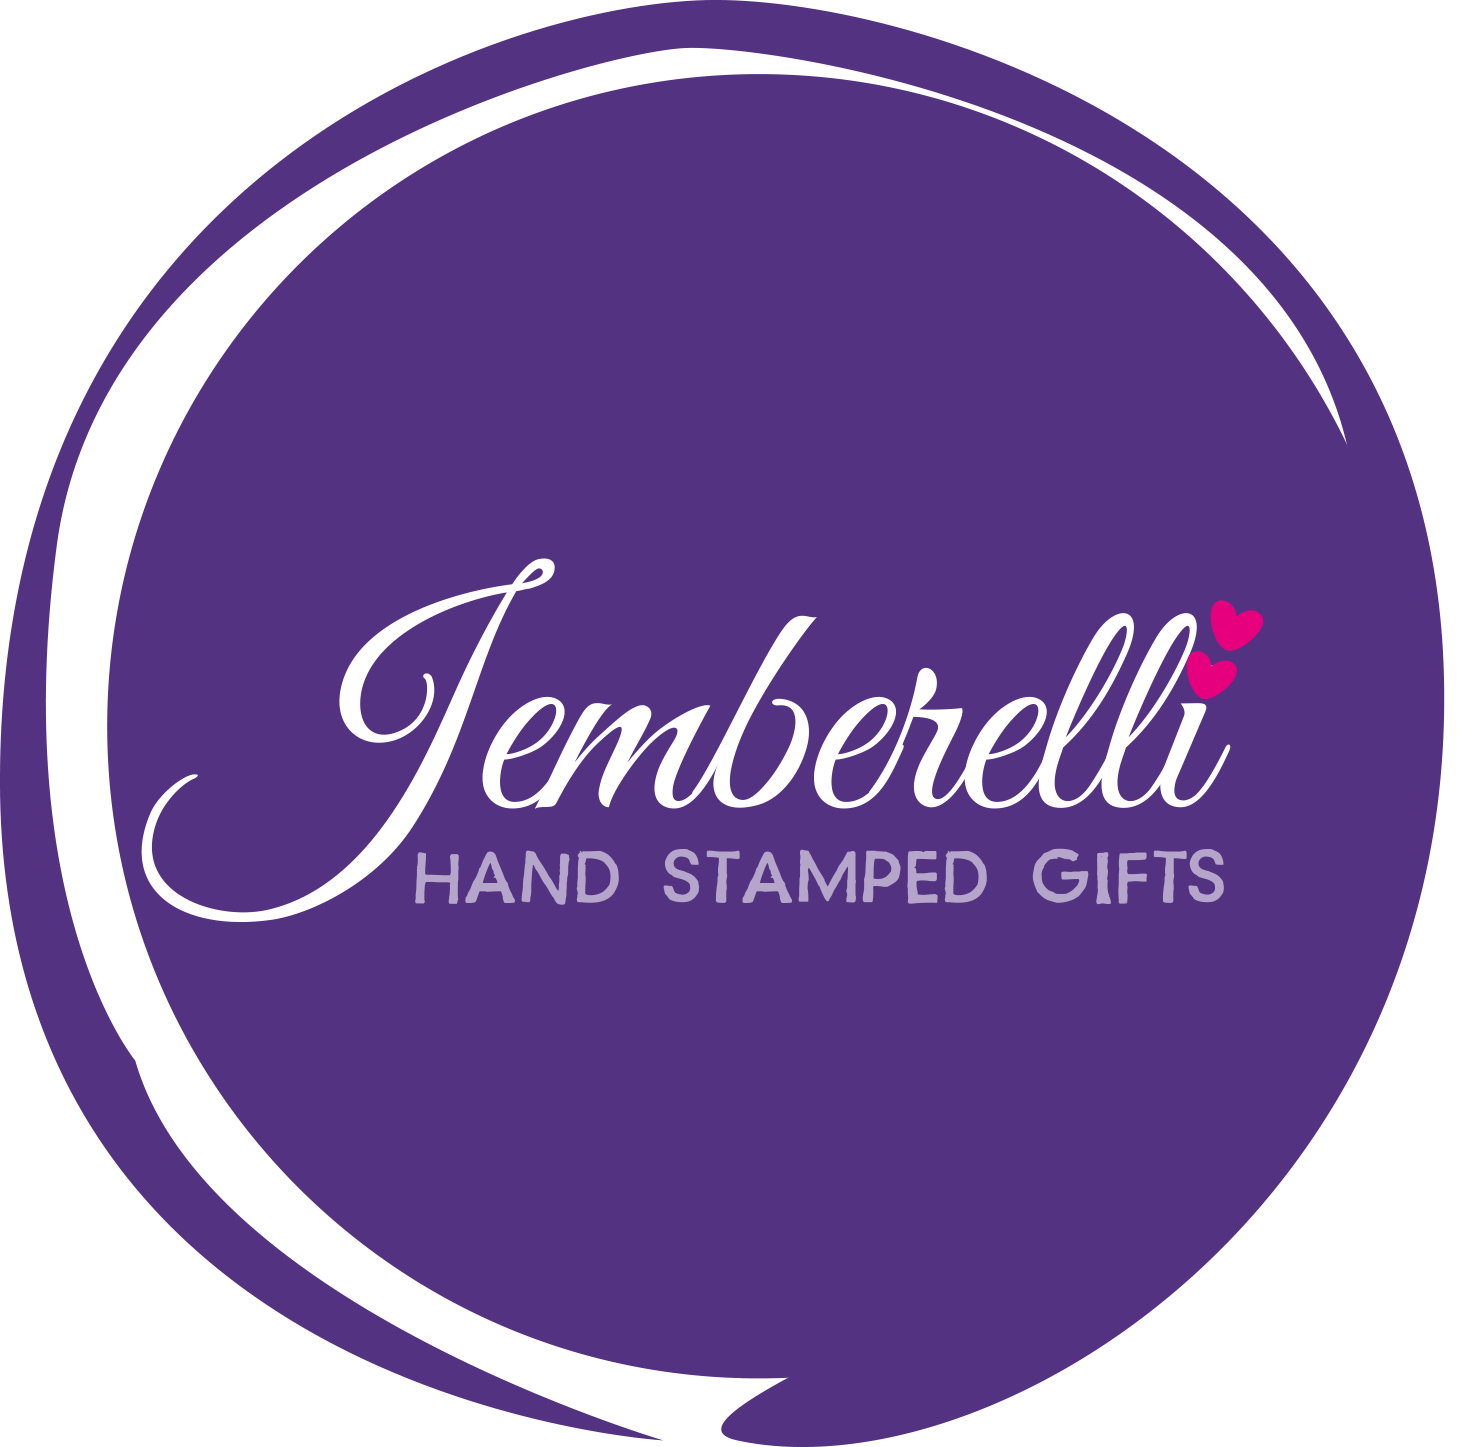 Jemberelli Hand Stamped Gifts